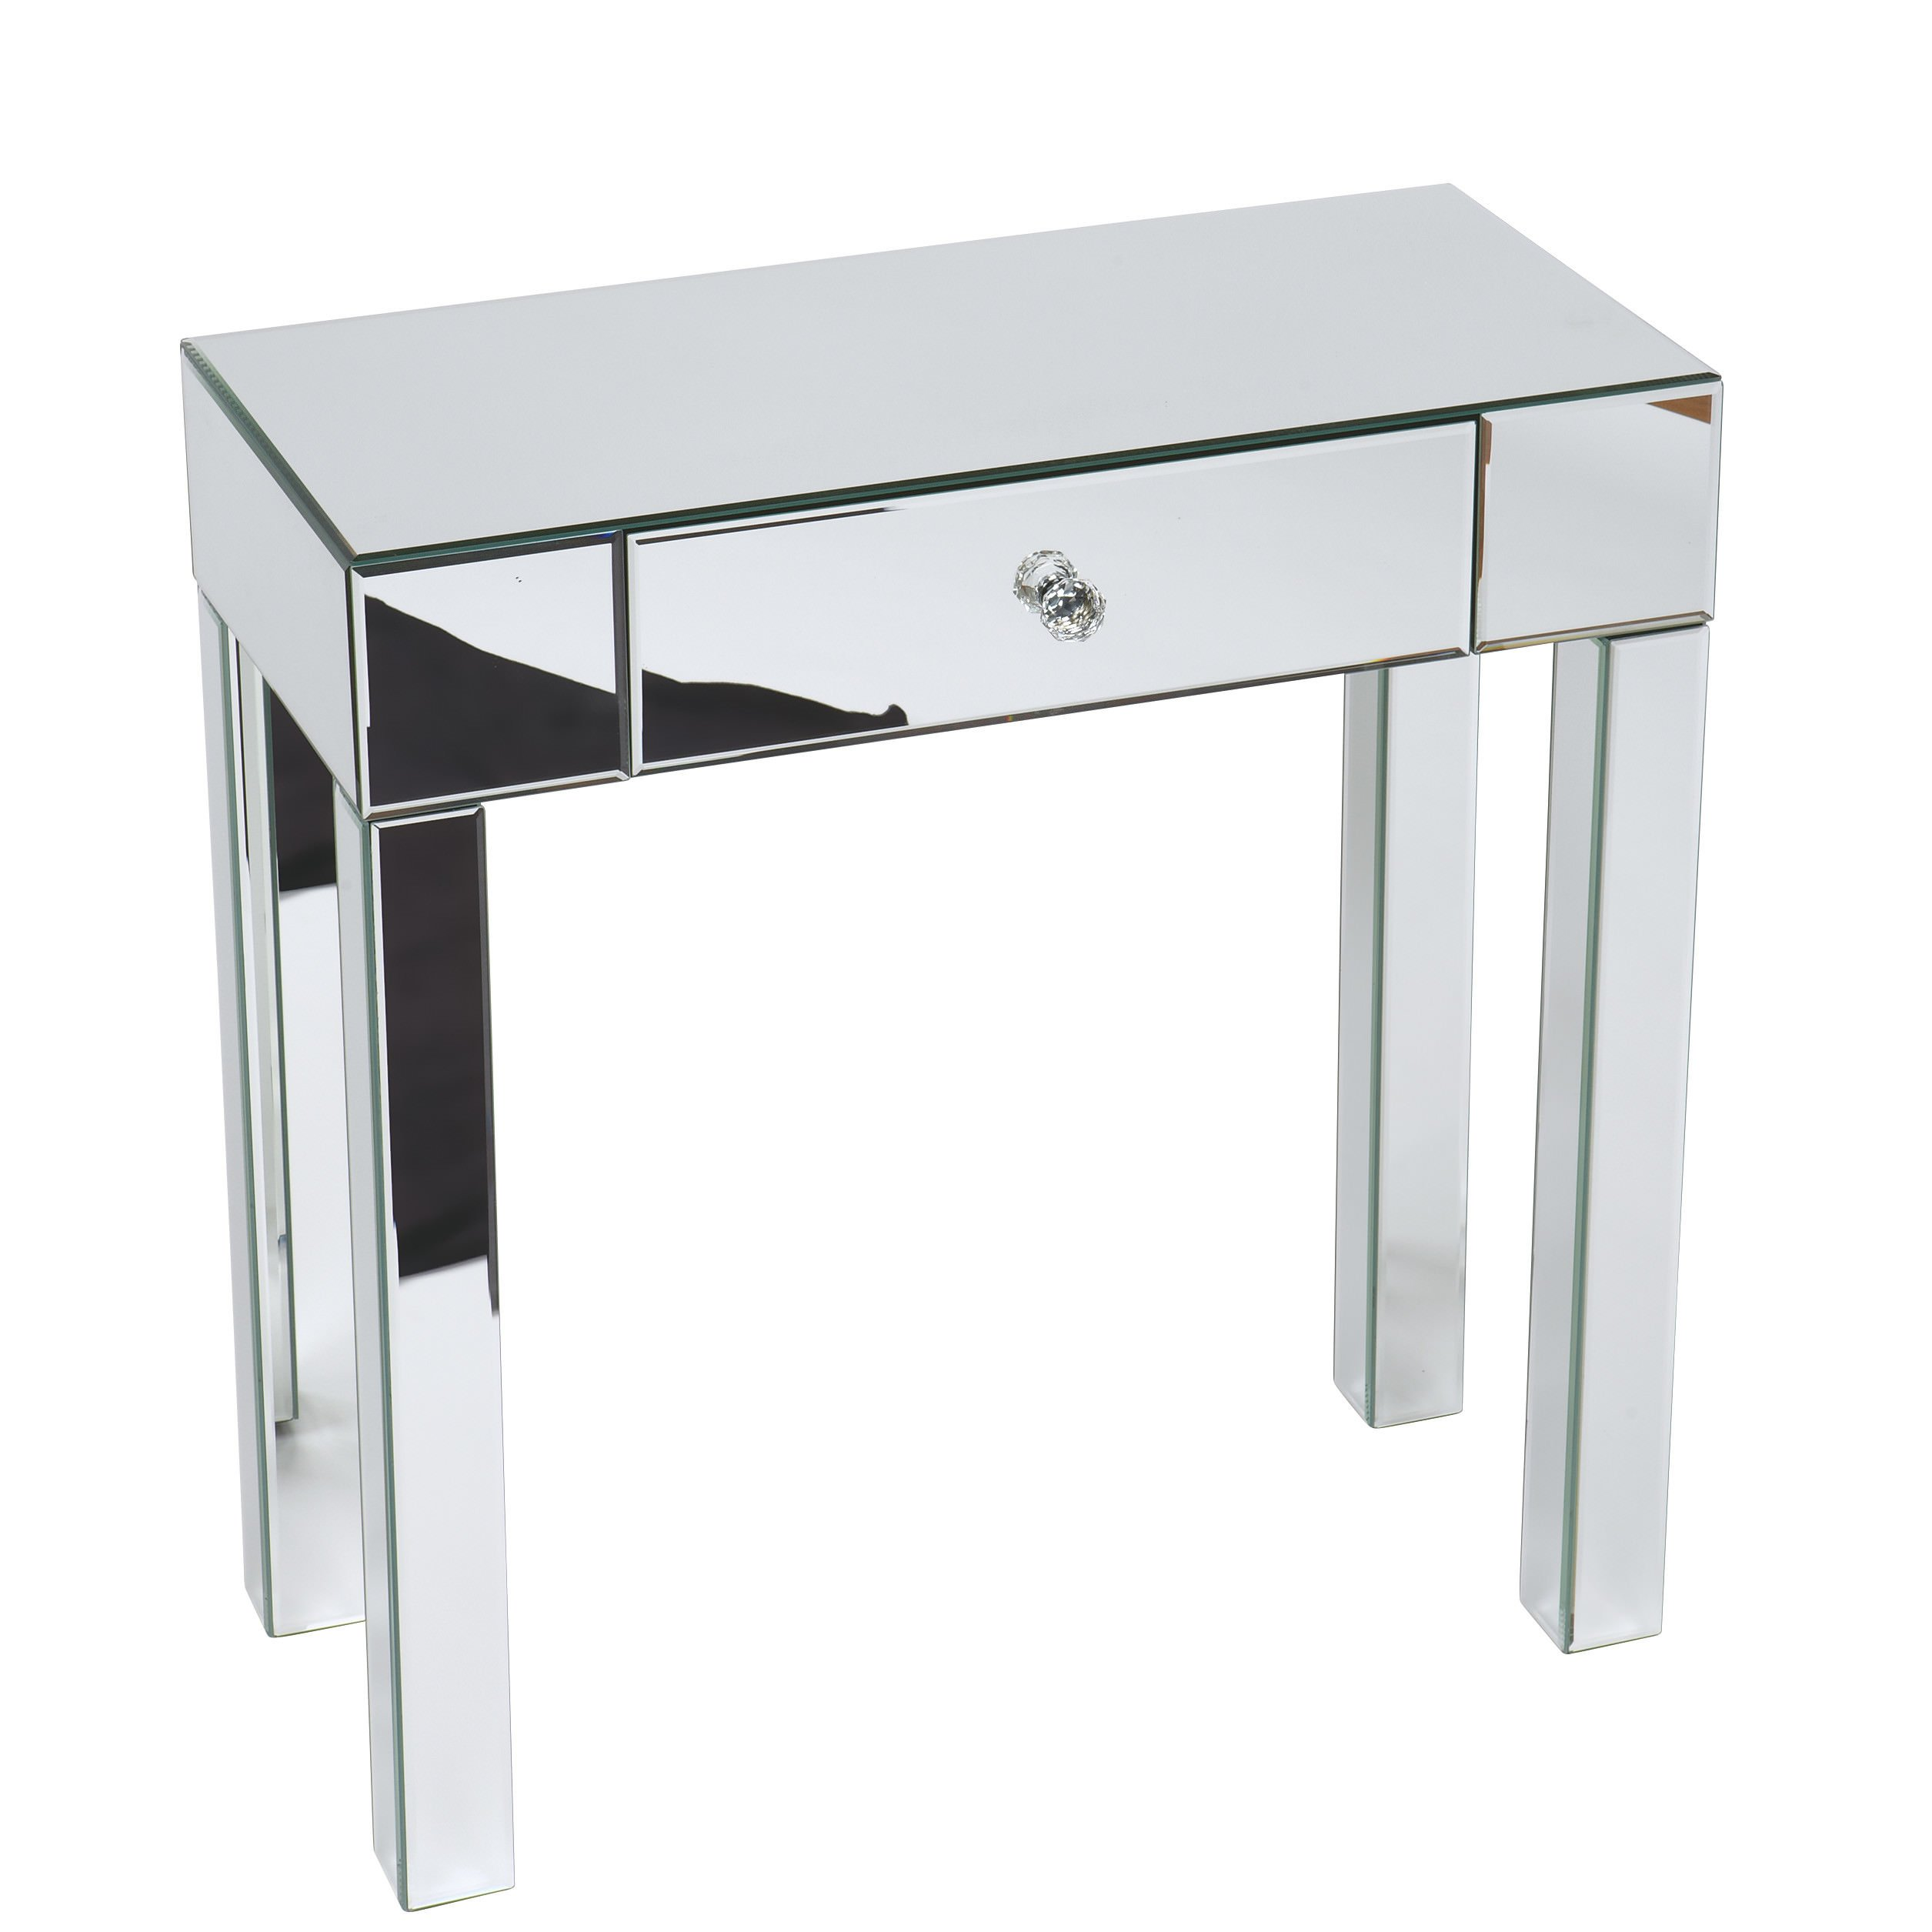 Mirrored foyer table photo